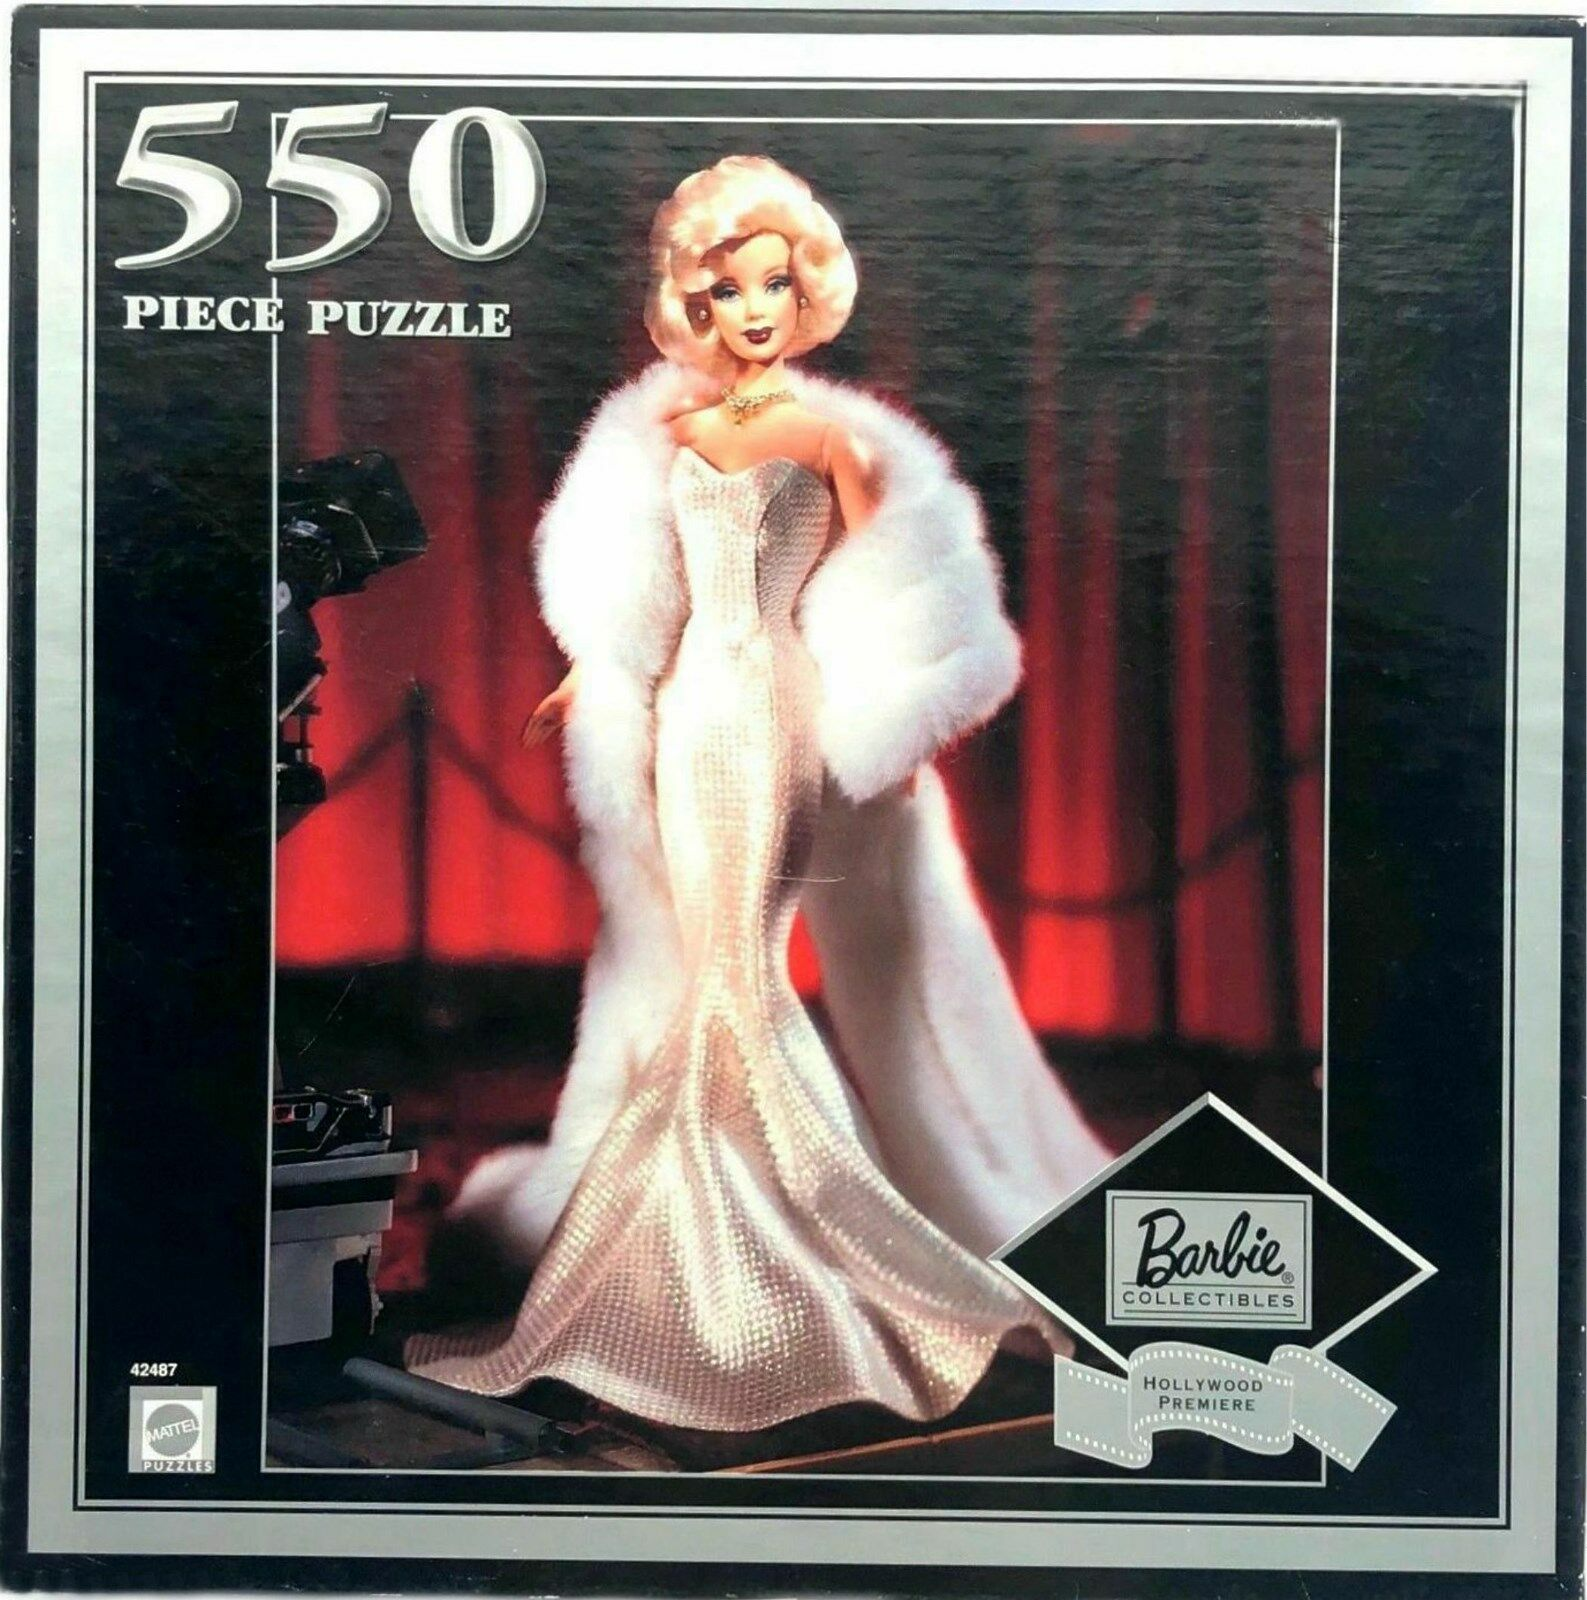 Barbie Puzzle Hollywood Premiere Blondhead 550 Piece Factory Sealed NEW 2000